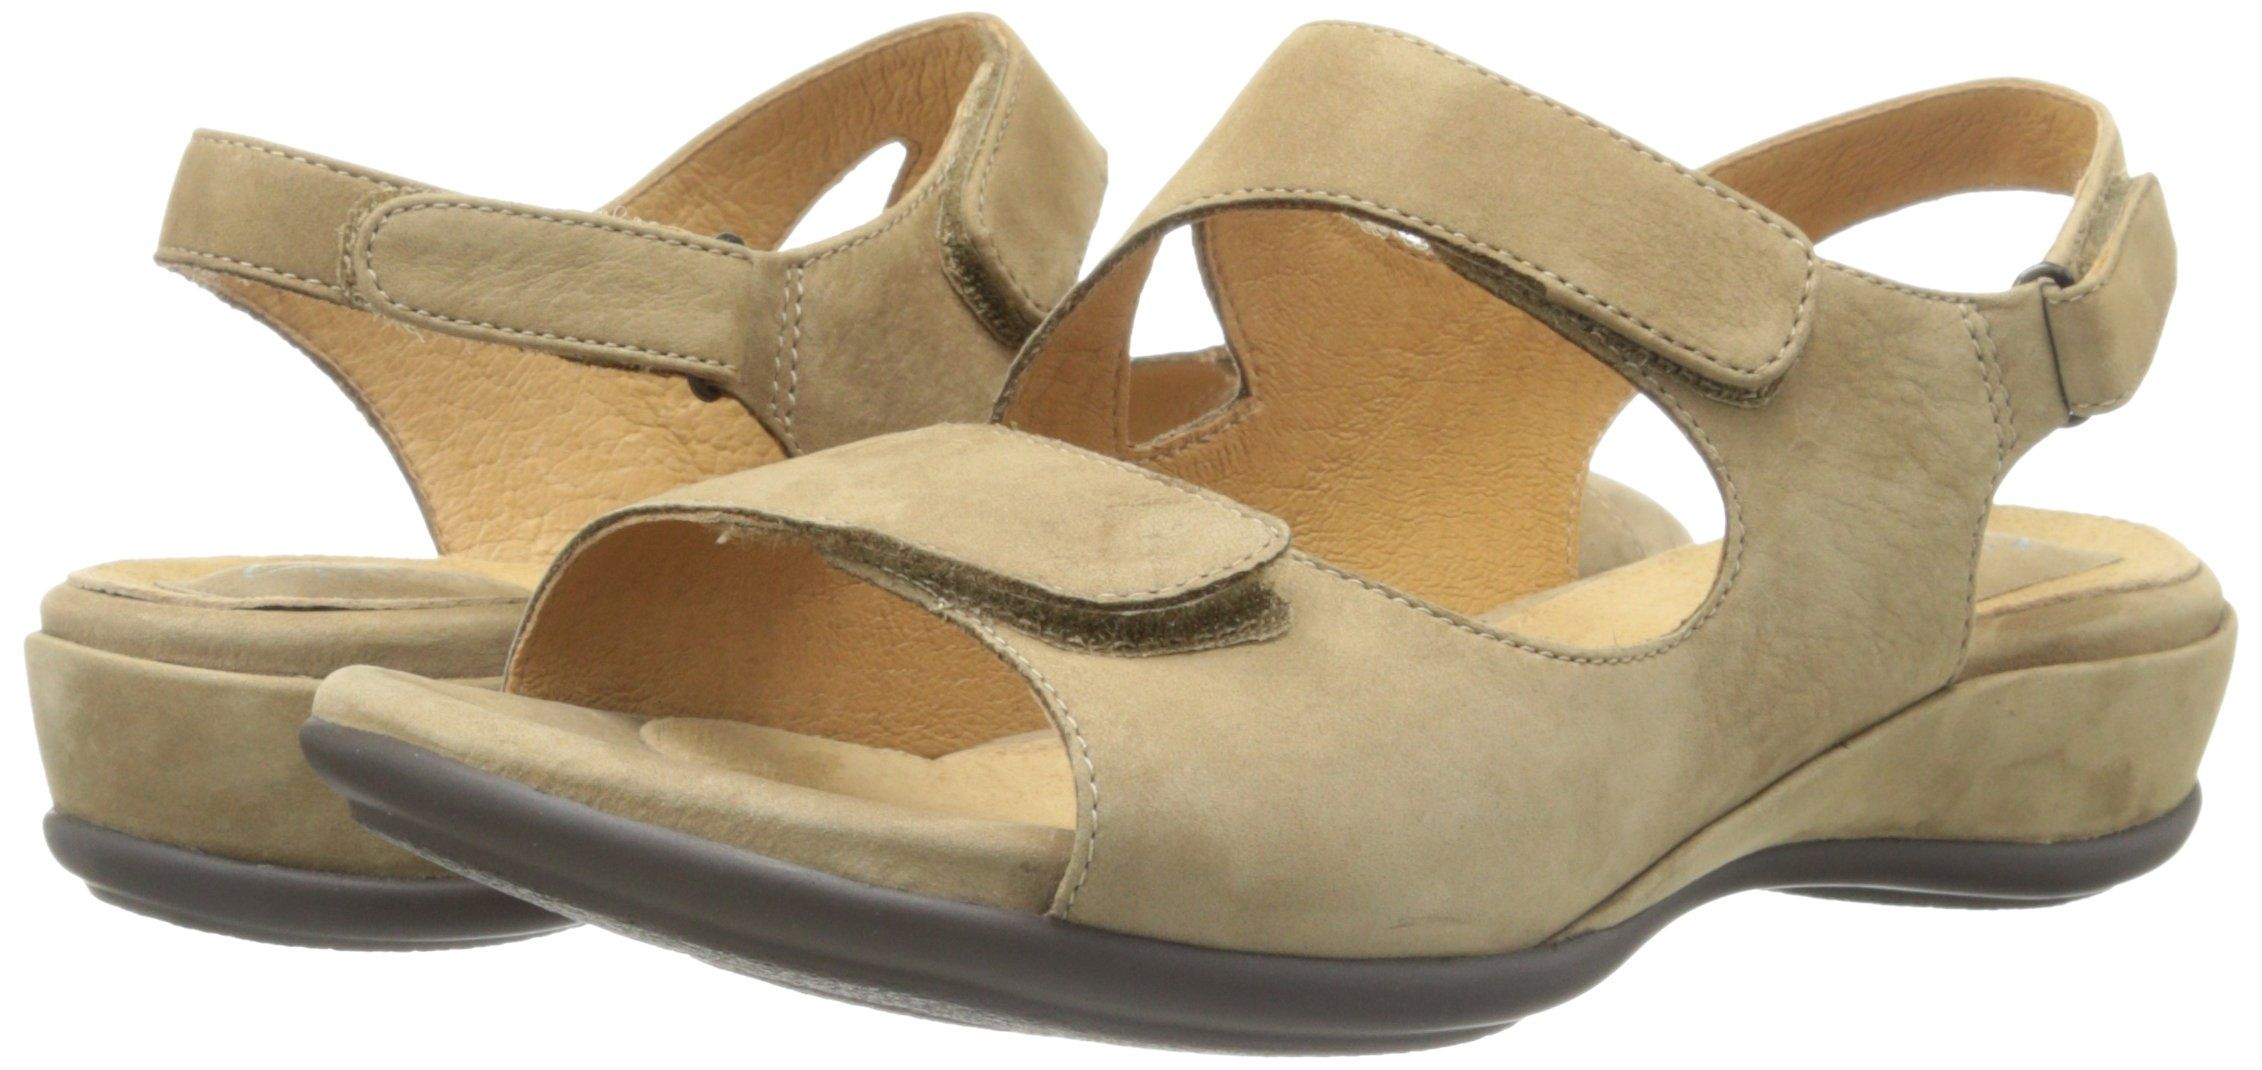 Clarks Artisan Womens Sarasota Quarter Strap SandalMushroom6.5 XW * Check  out this great product. (This is an affiliate link and I receive a  commission for ...